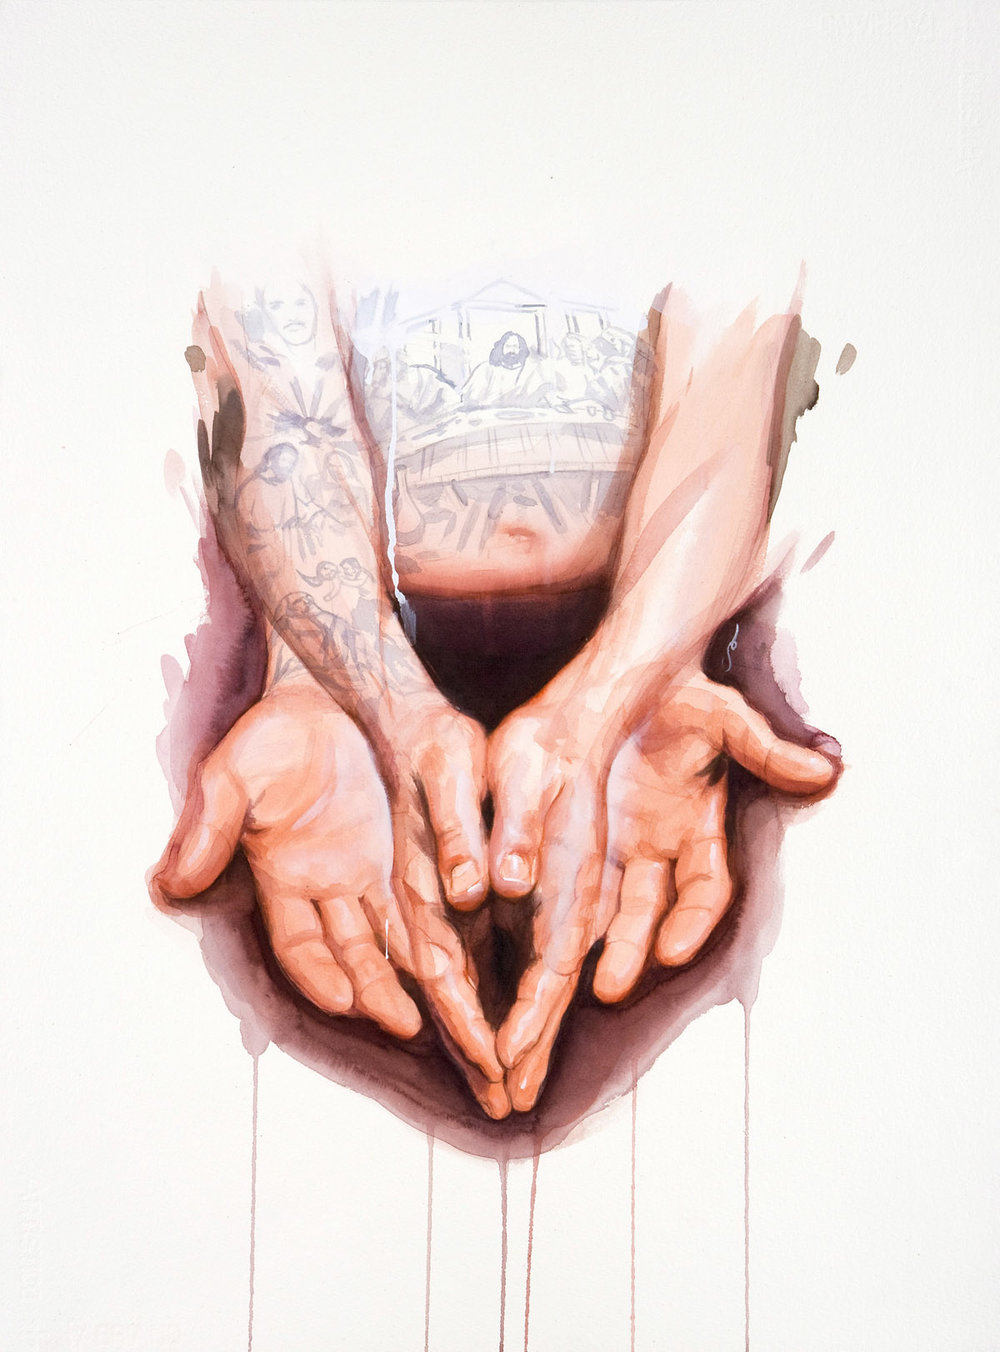 "'Danny Romo Hands Study', watercolor and gouache on 300lb. Fabriano paper, 30"" x 22"", 2008, Private Collection"